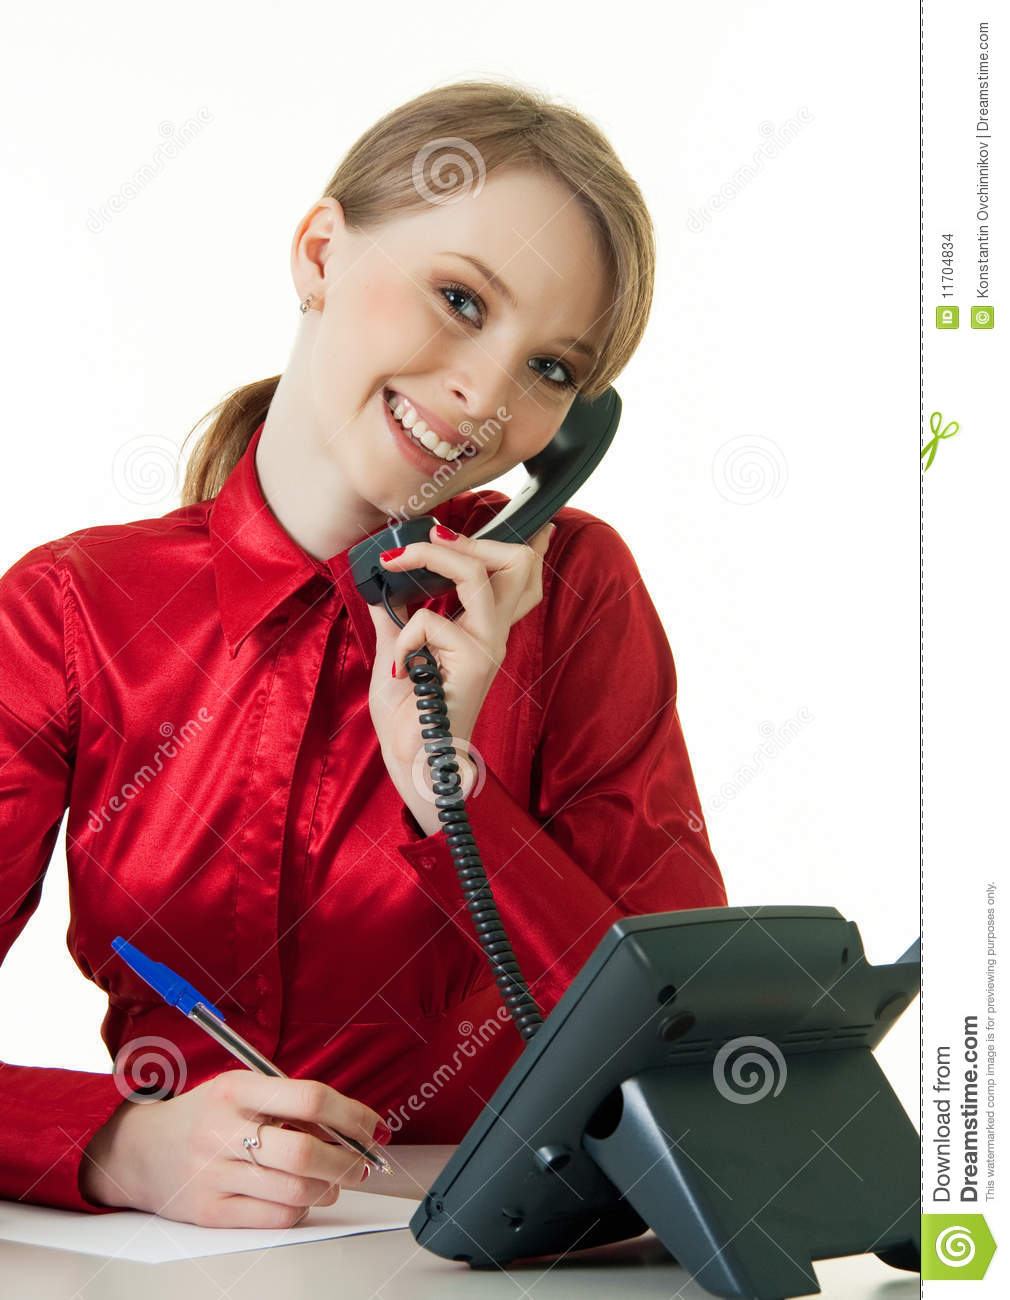 Smiling Young Receptionist Using Desk Phone Stock Images